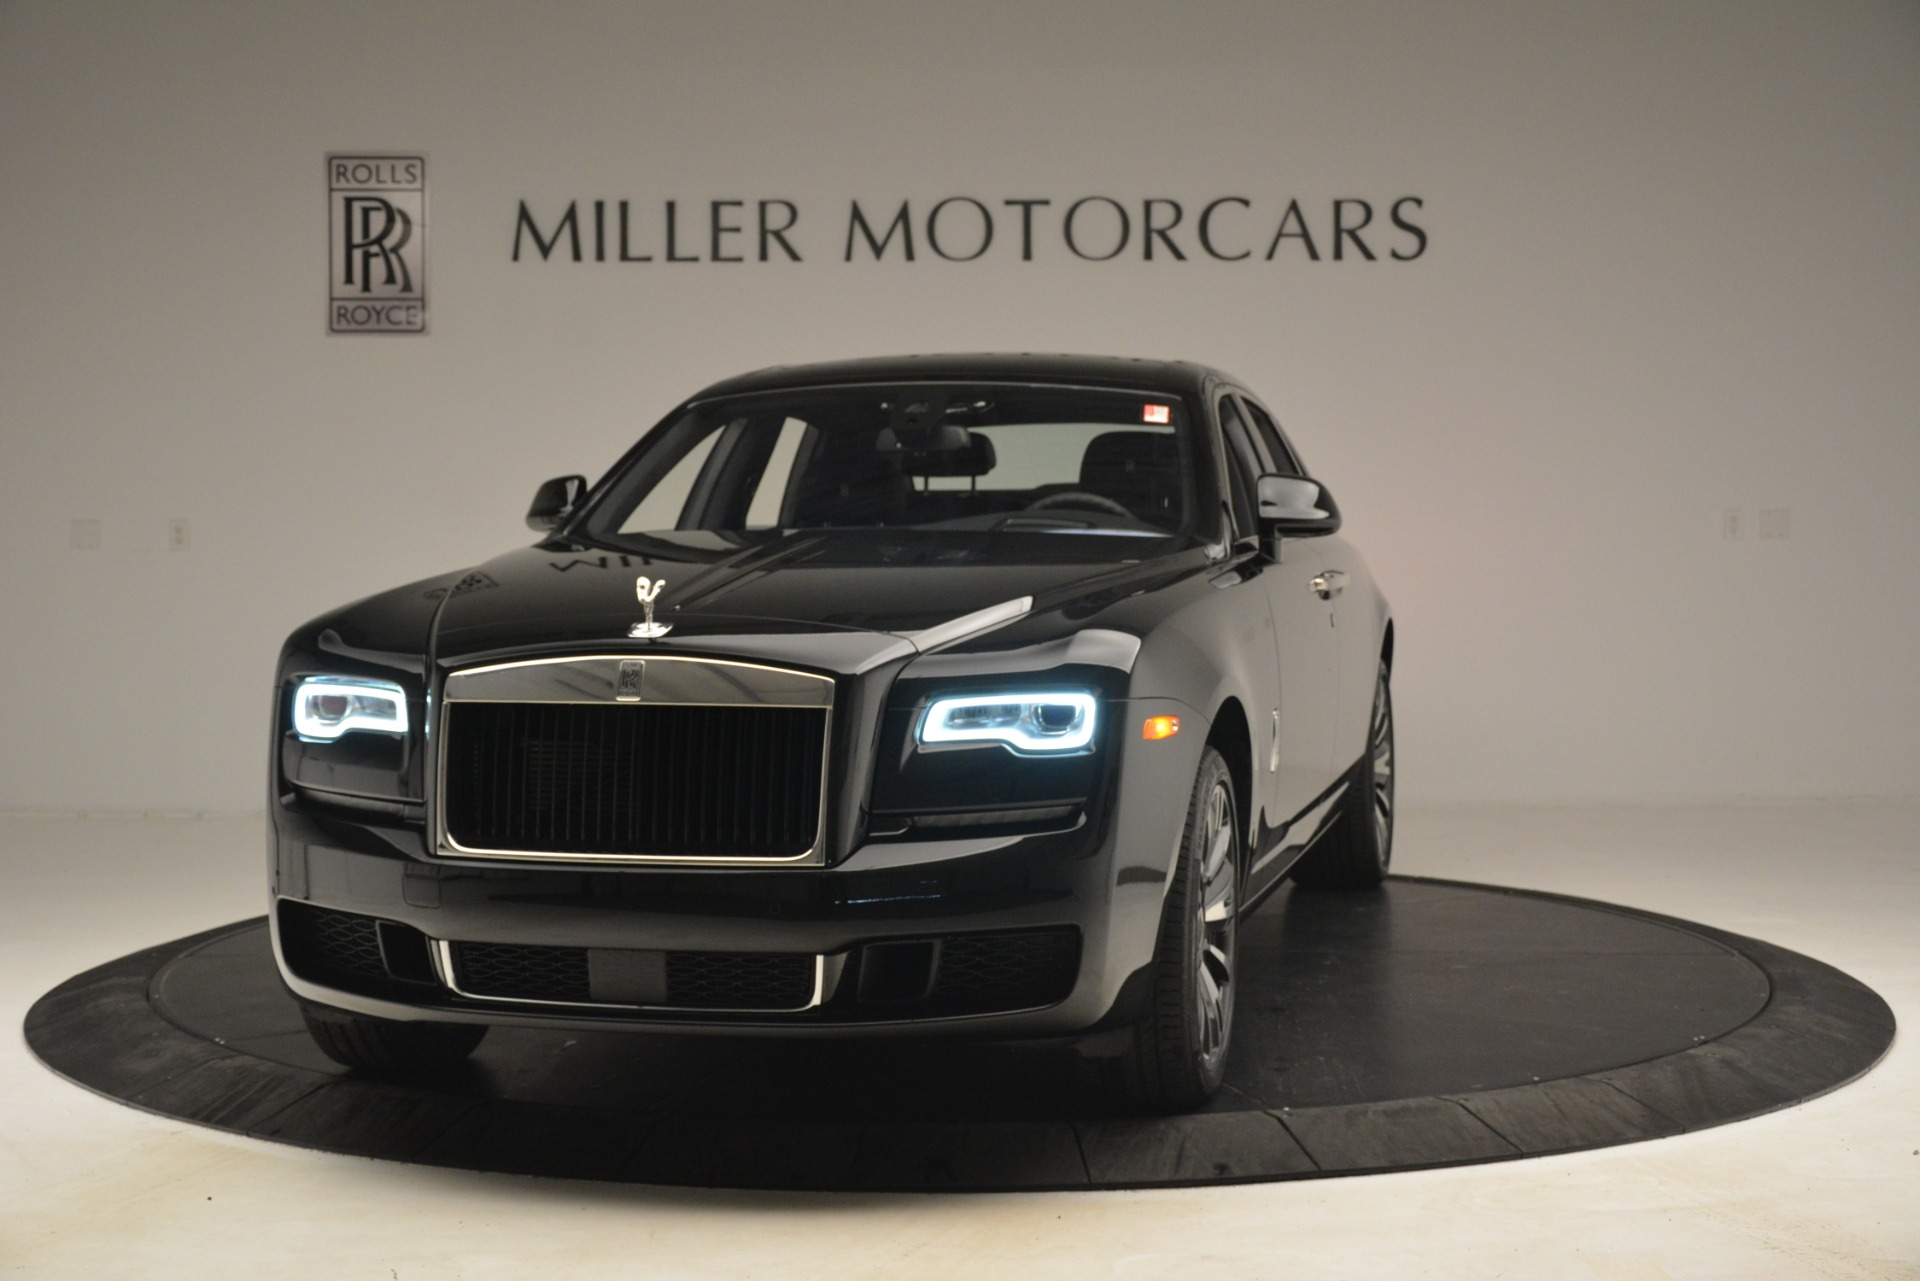 New 2019 Rolls-Royce Ghost for sale $319,900 at Bentley Greenwich in Greenwich CT 06830 1